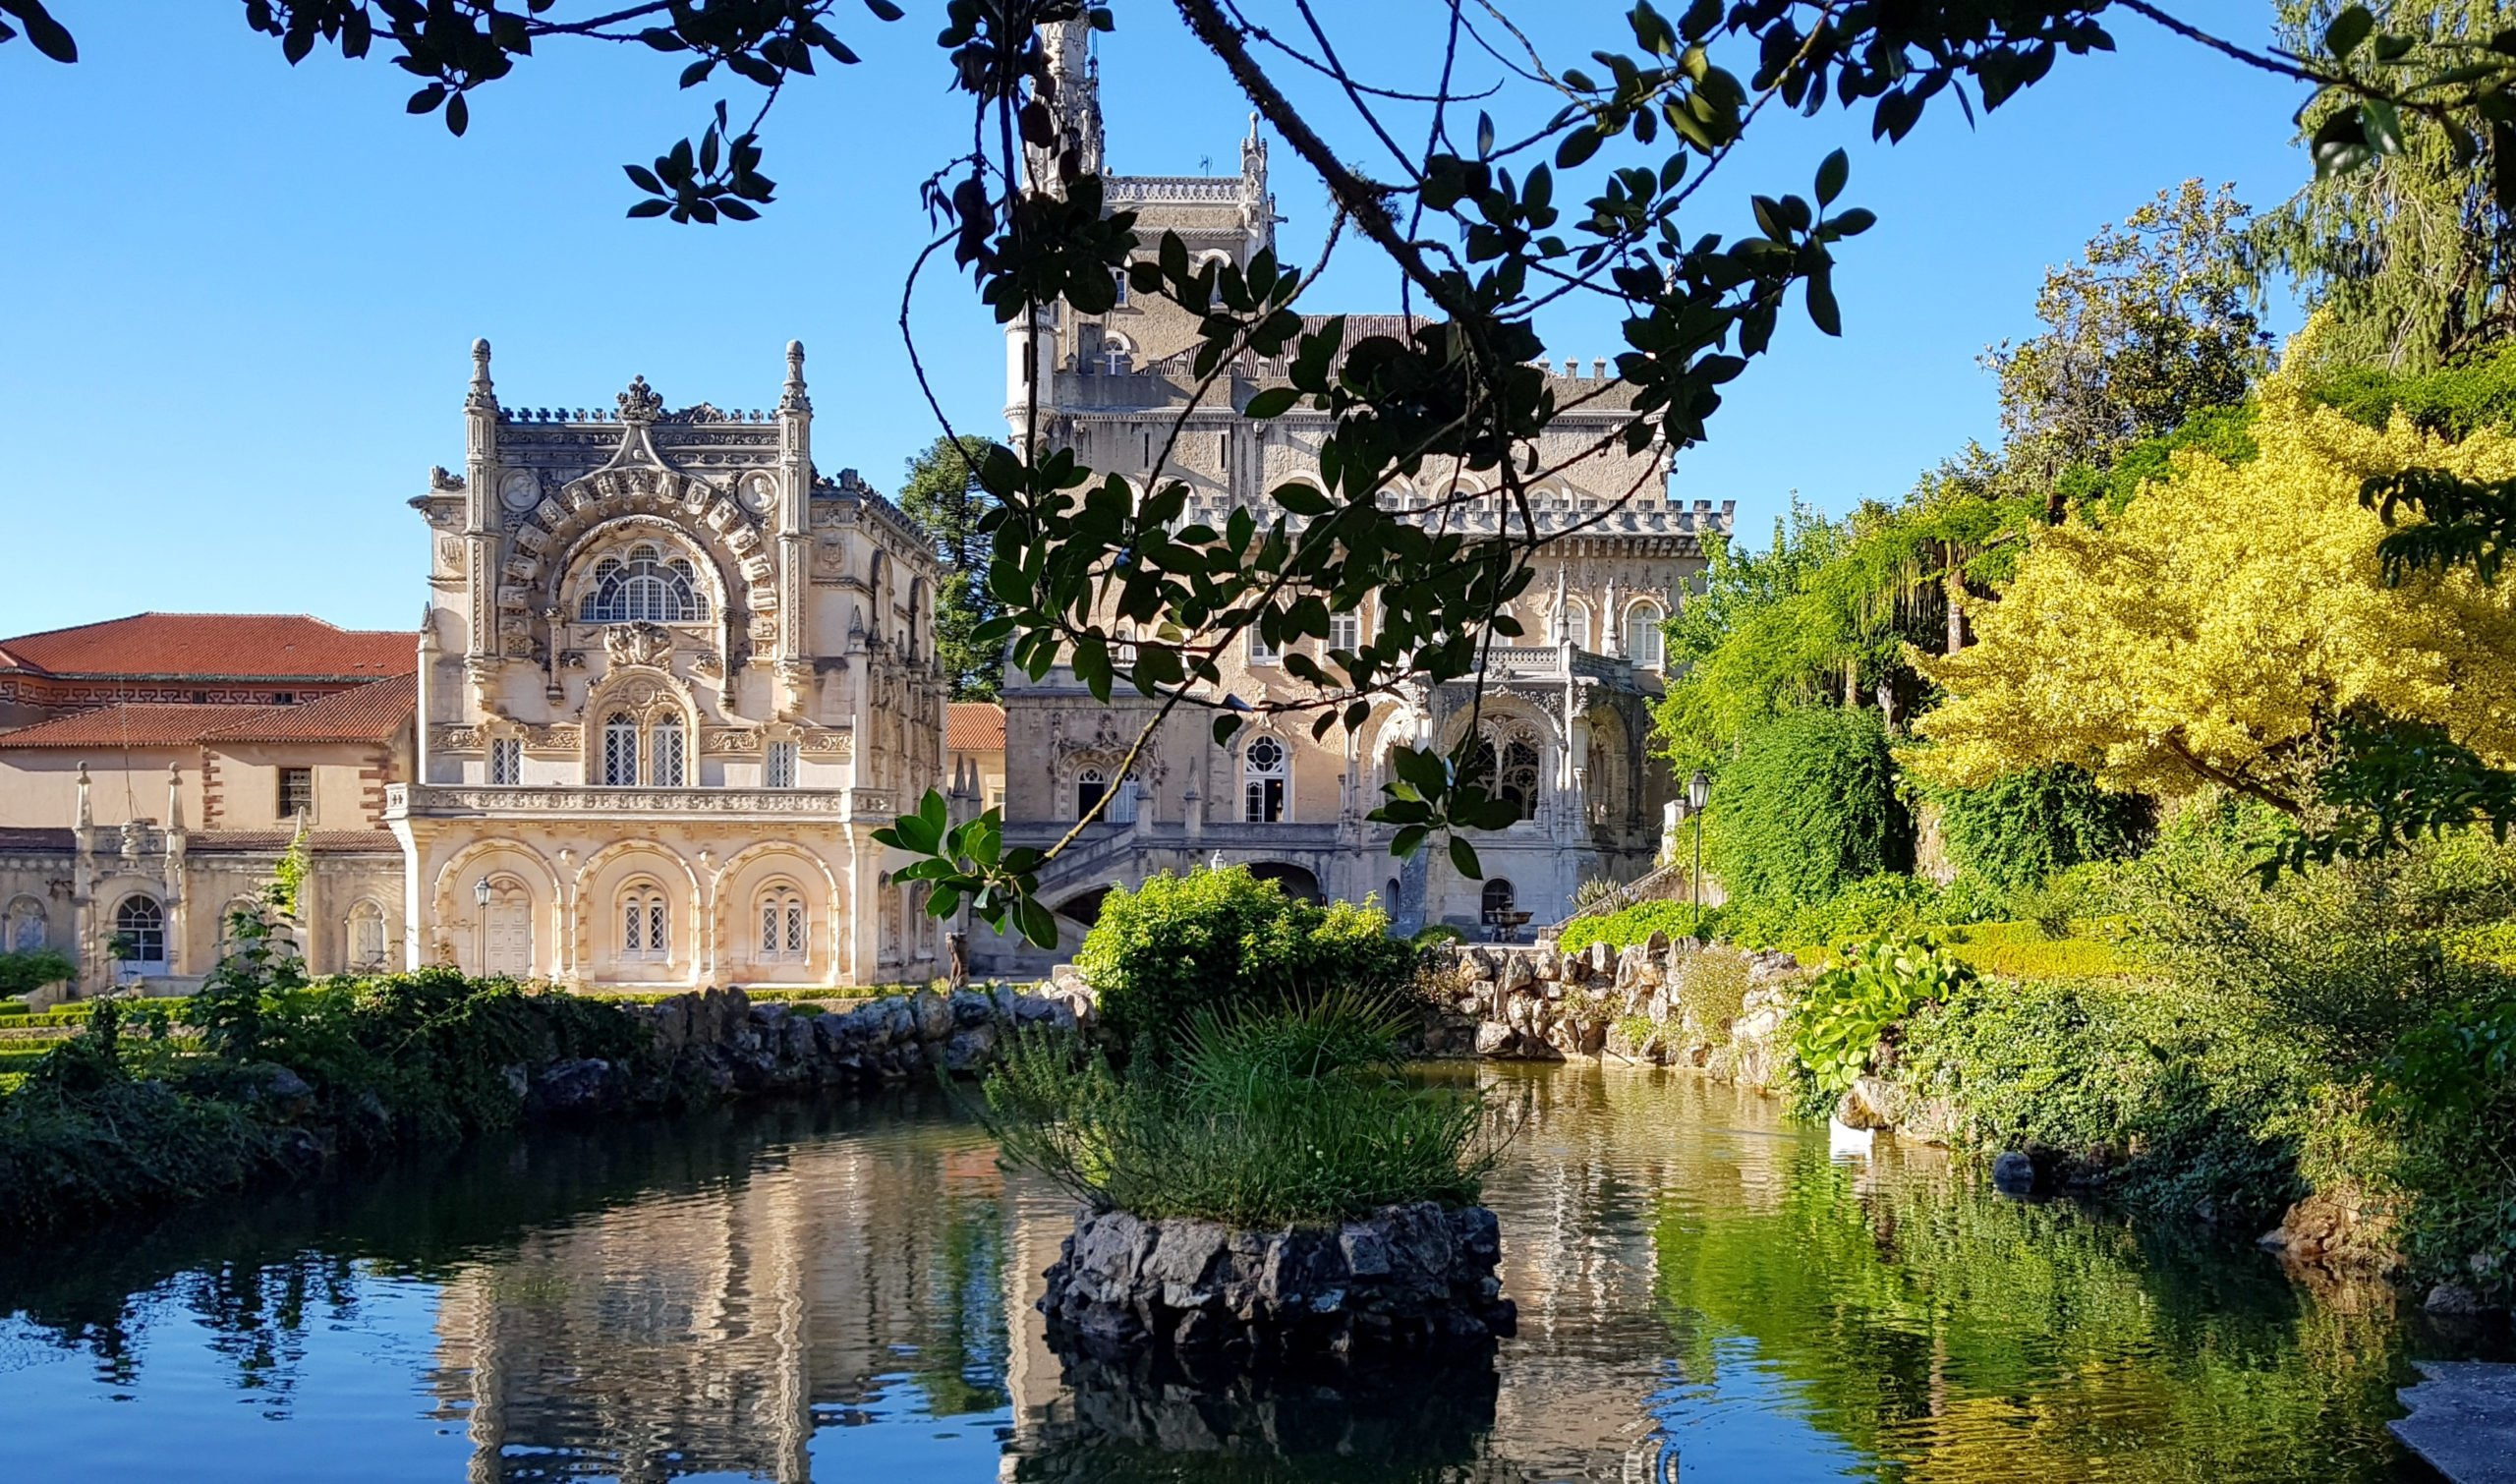 Discover The Beautiful Royal Palace Of Buscasso On The North Of Portugal 6 Day Package Tour